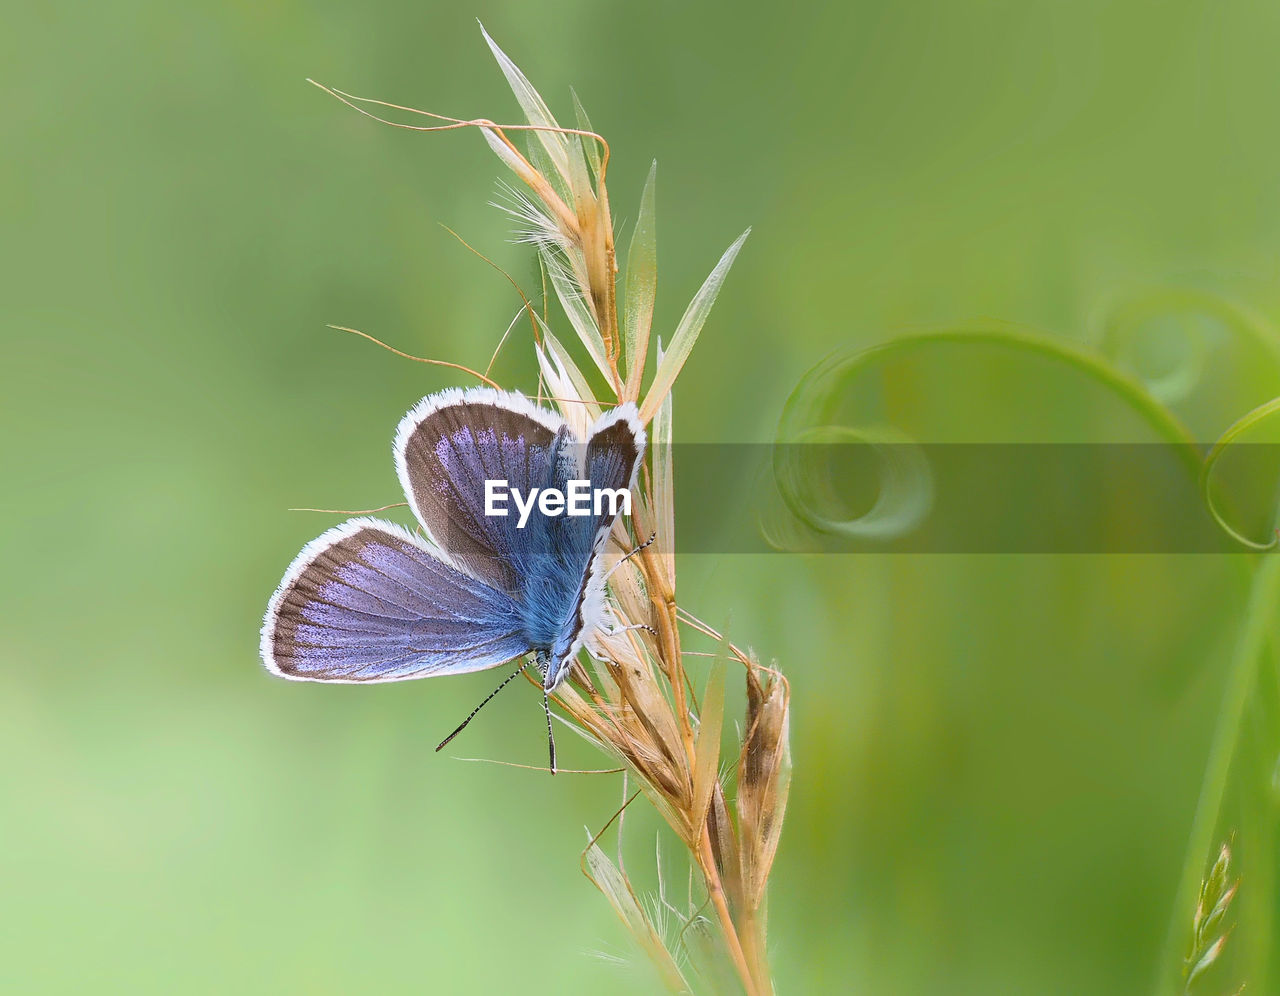 animal wildlife, invertebrate, animal, animal themes, insect, animals in the wild, one animal, plant, close-up, beauty in nature, animal wing, nature, growth, focus on foreground, no people, day, green color, butterfly - insect, vulnerability, butterfly, outdoors